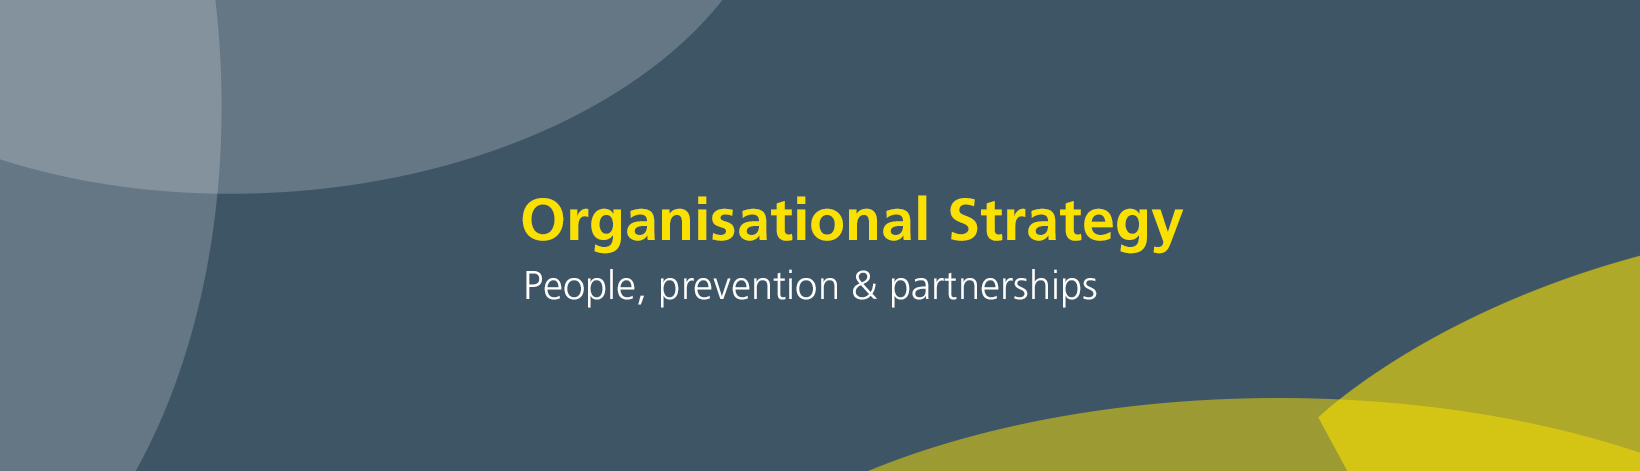 Our organisational strategy